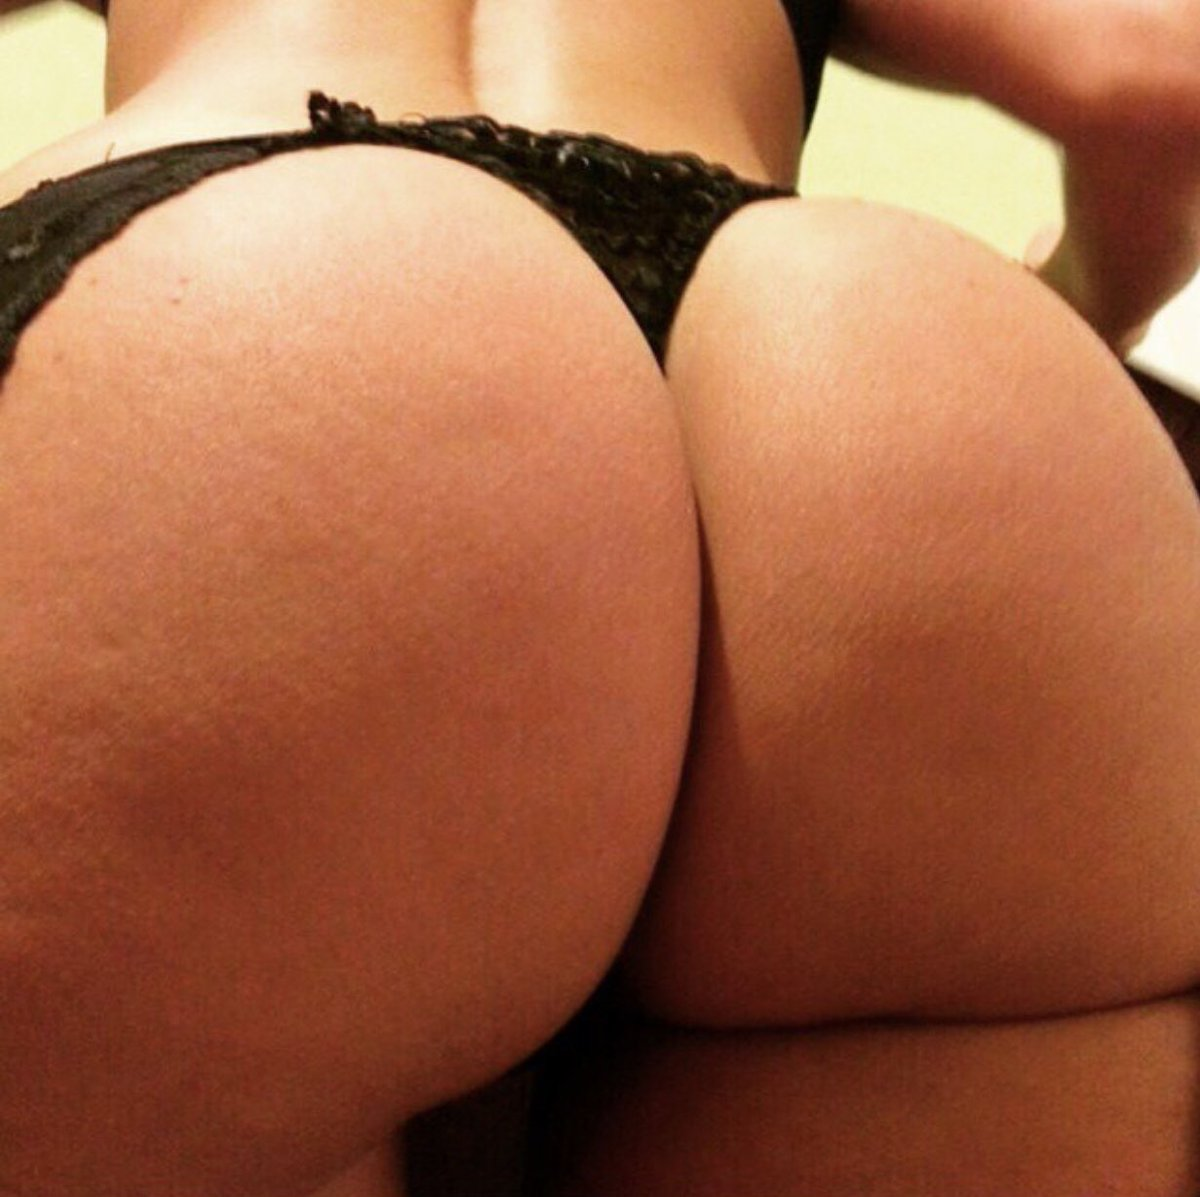 Kendra Lust  - Sunday is th assworship lustarmy twitter @KendraLust